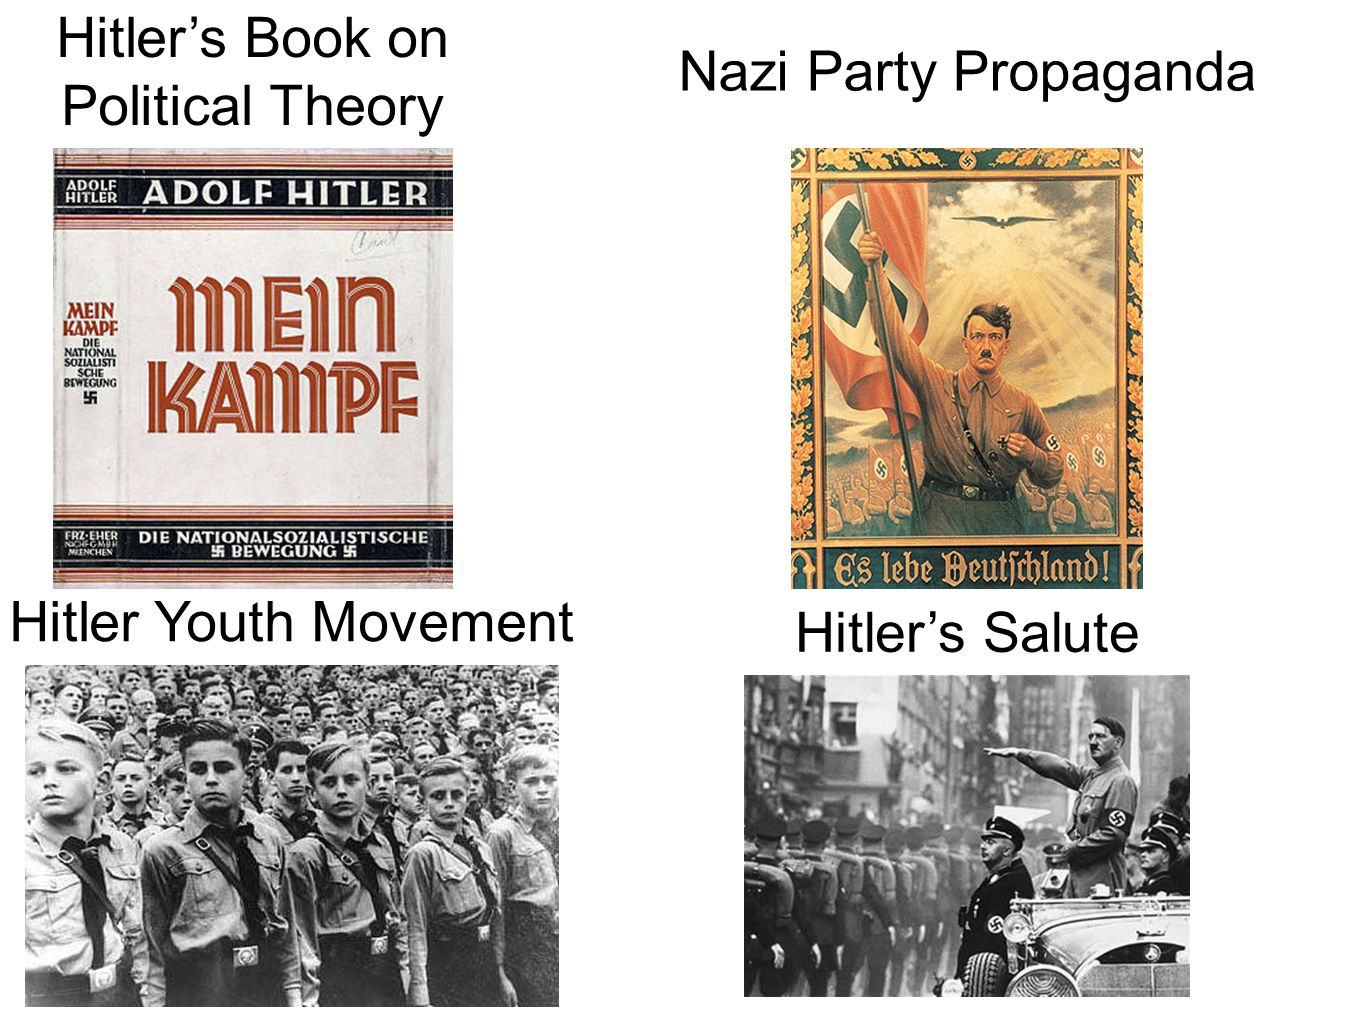 Hitler's Book on Political Theory